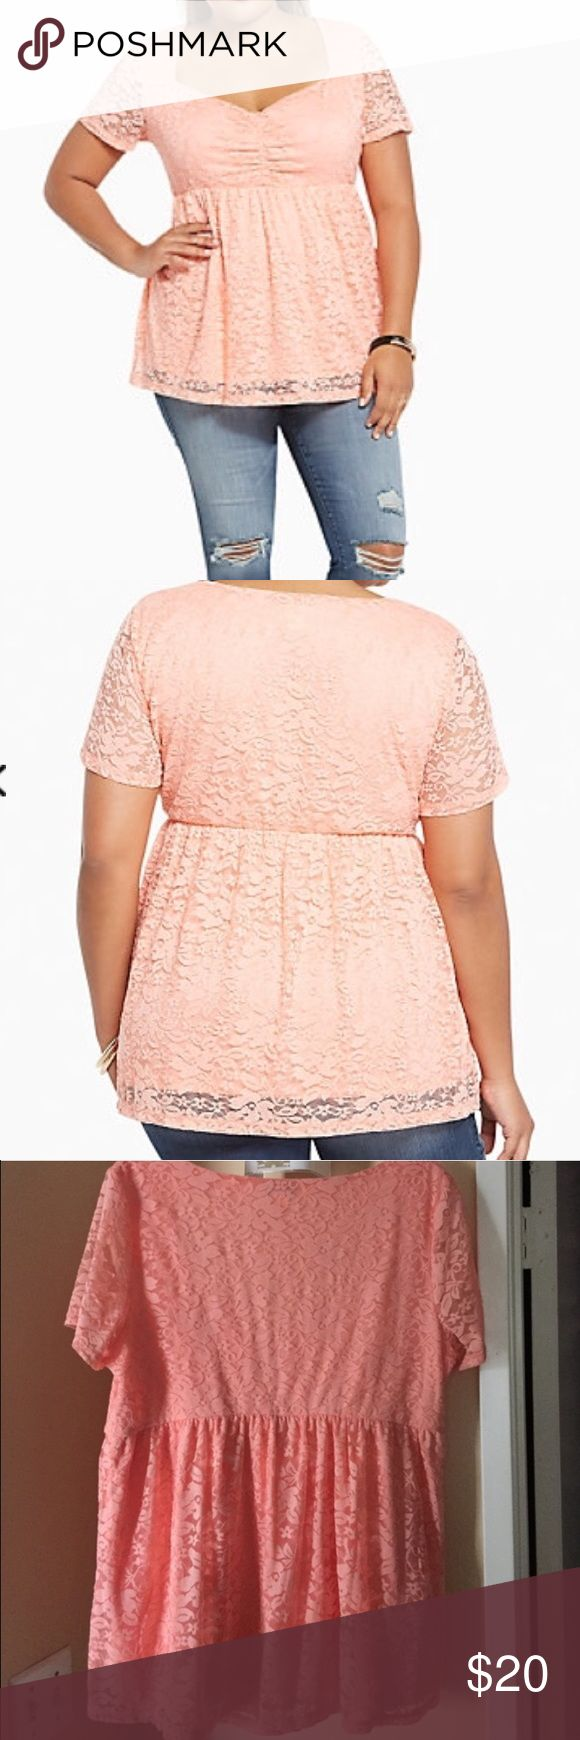 Torrid brand babydoll top size 0 = L Torrid babydoll top. New without tags. Label size 0 conversion size large torrid Tops